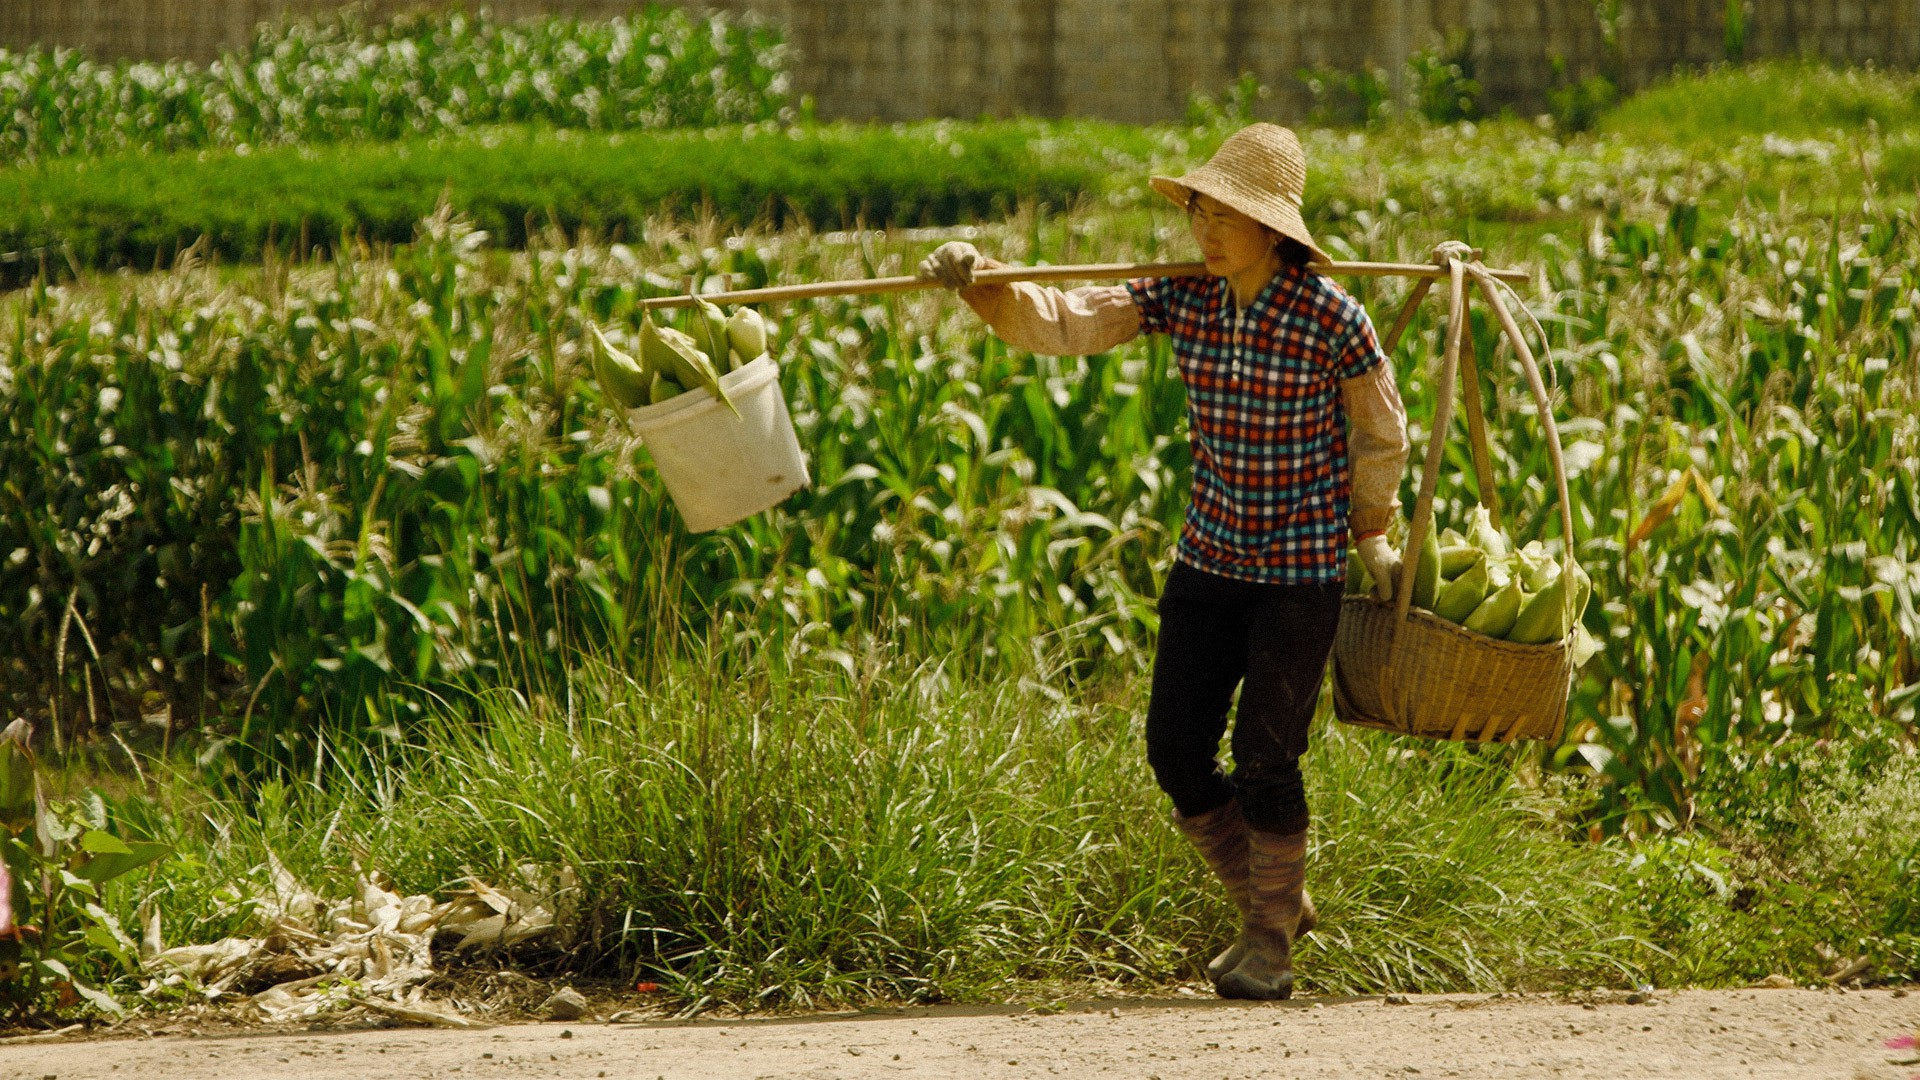 Chinese villager woman, walking around the corn crops, carrying the harvest